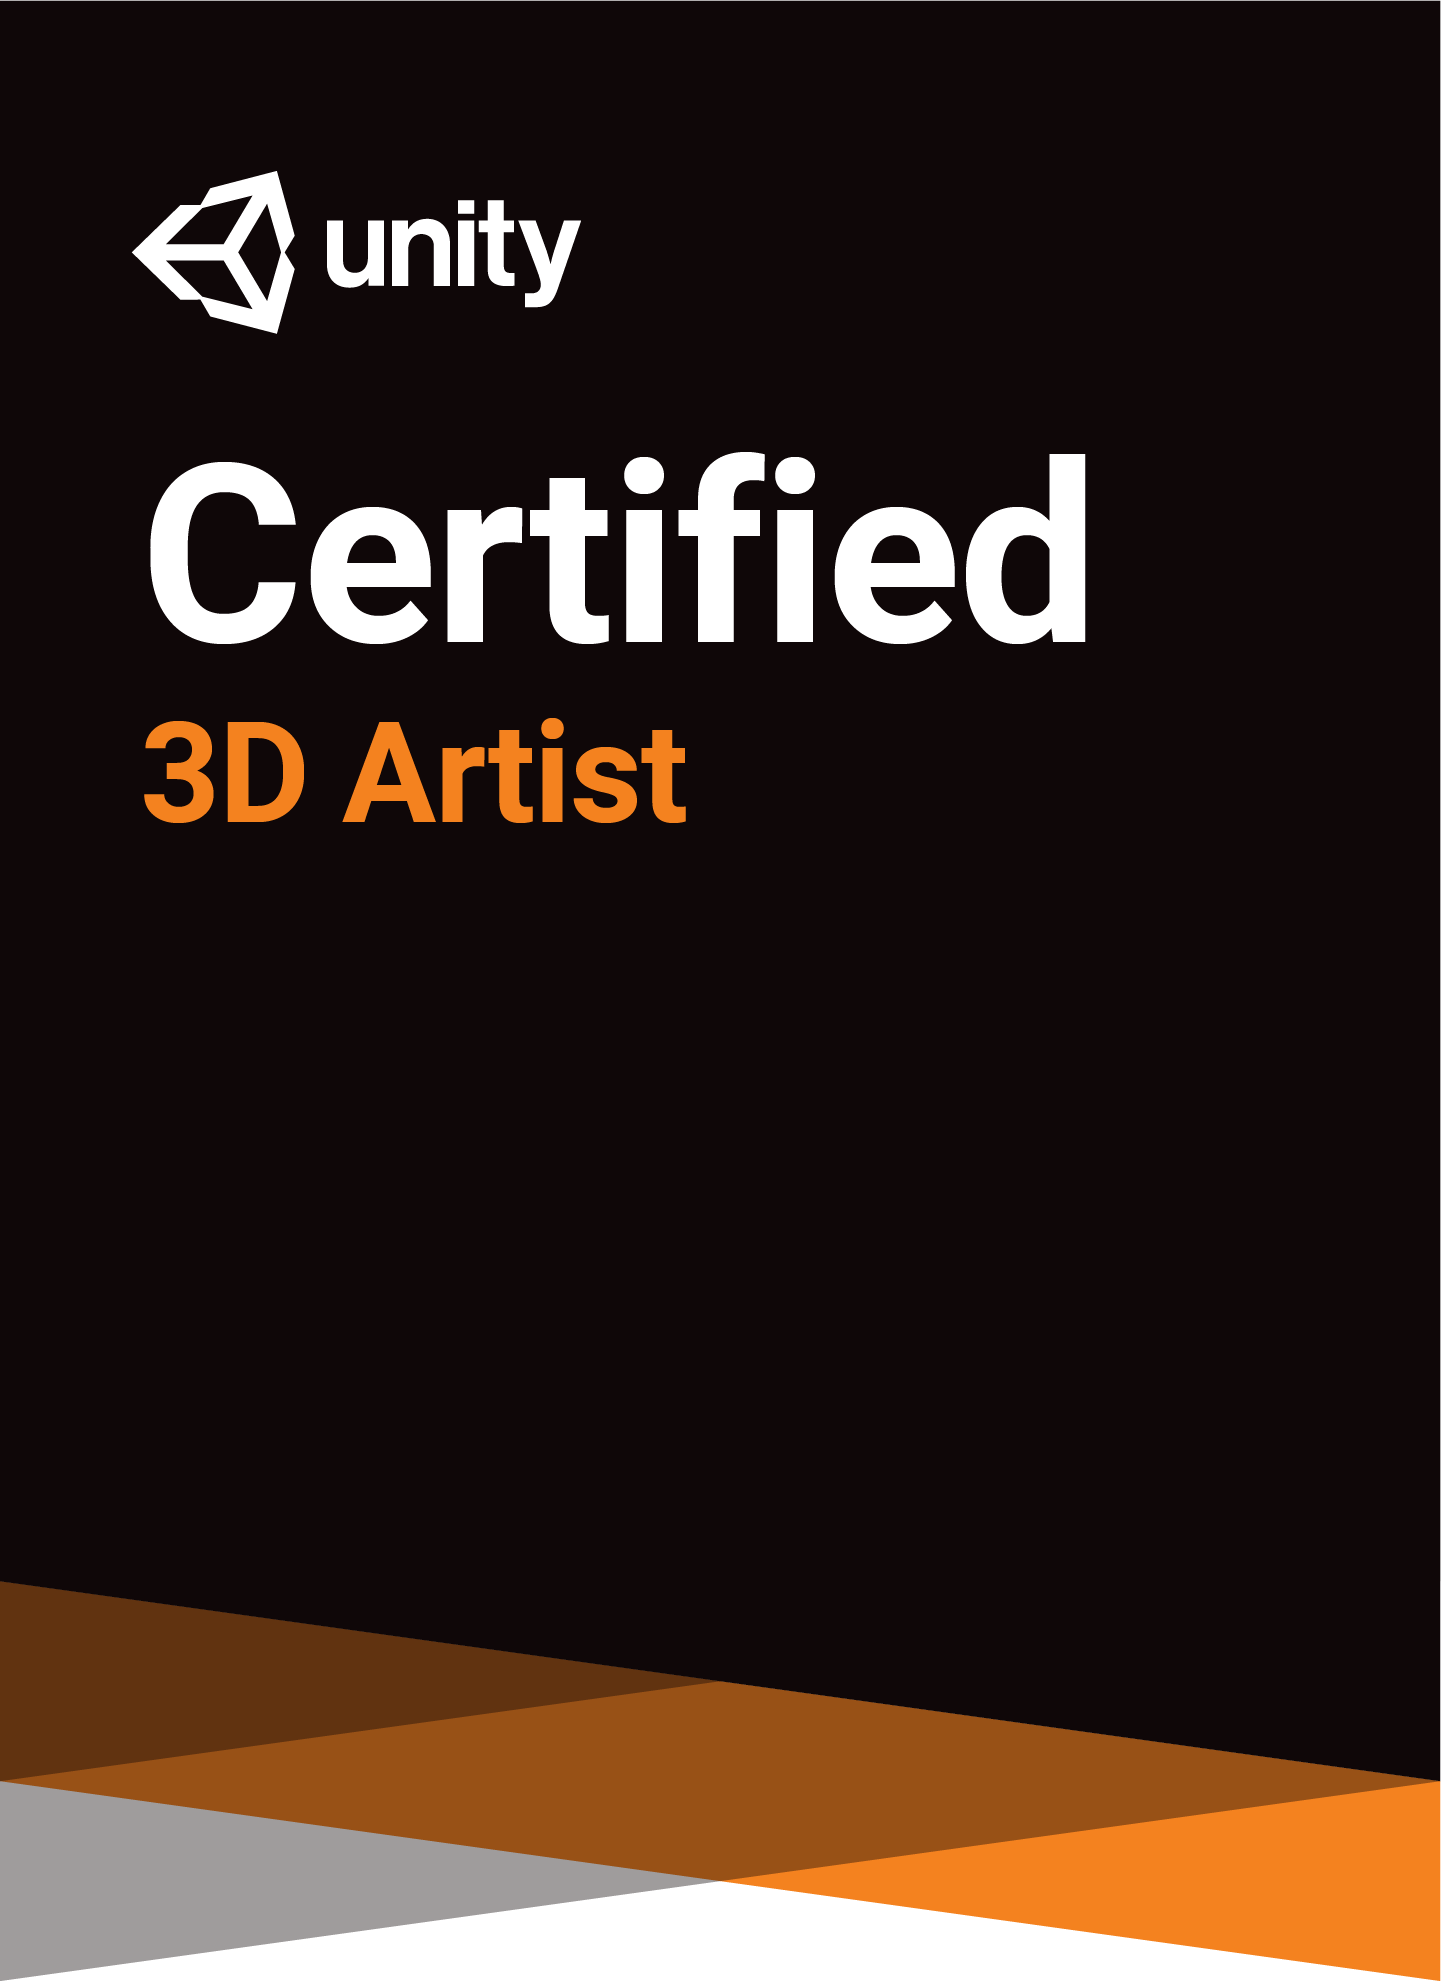 Unity Certified Programmer Image